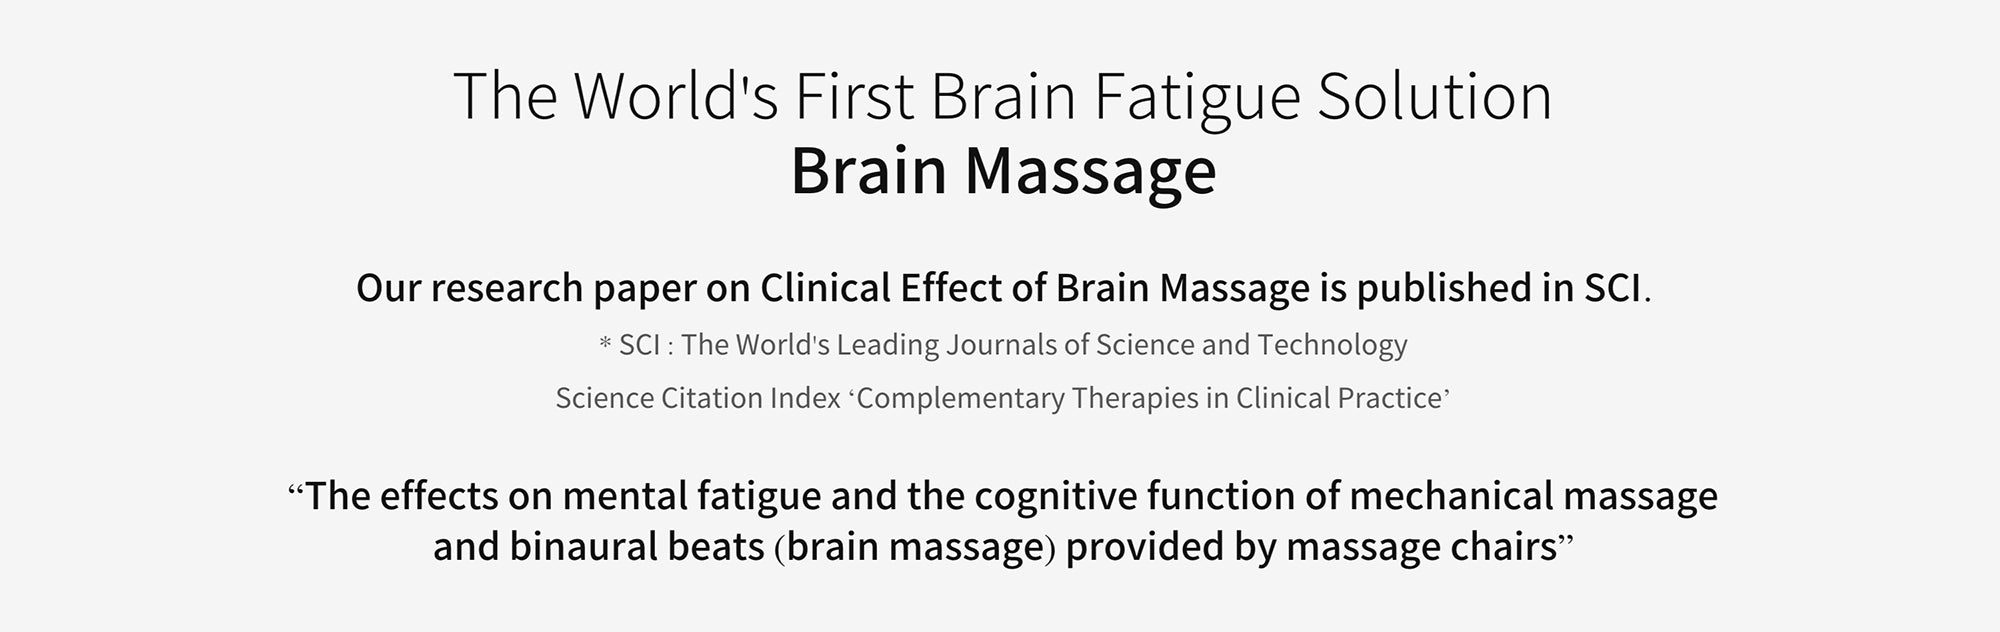 The World's First Brain Fatigue Solution, Brain Massage